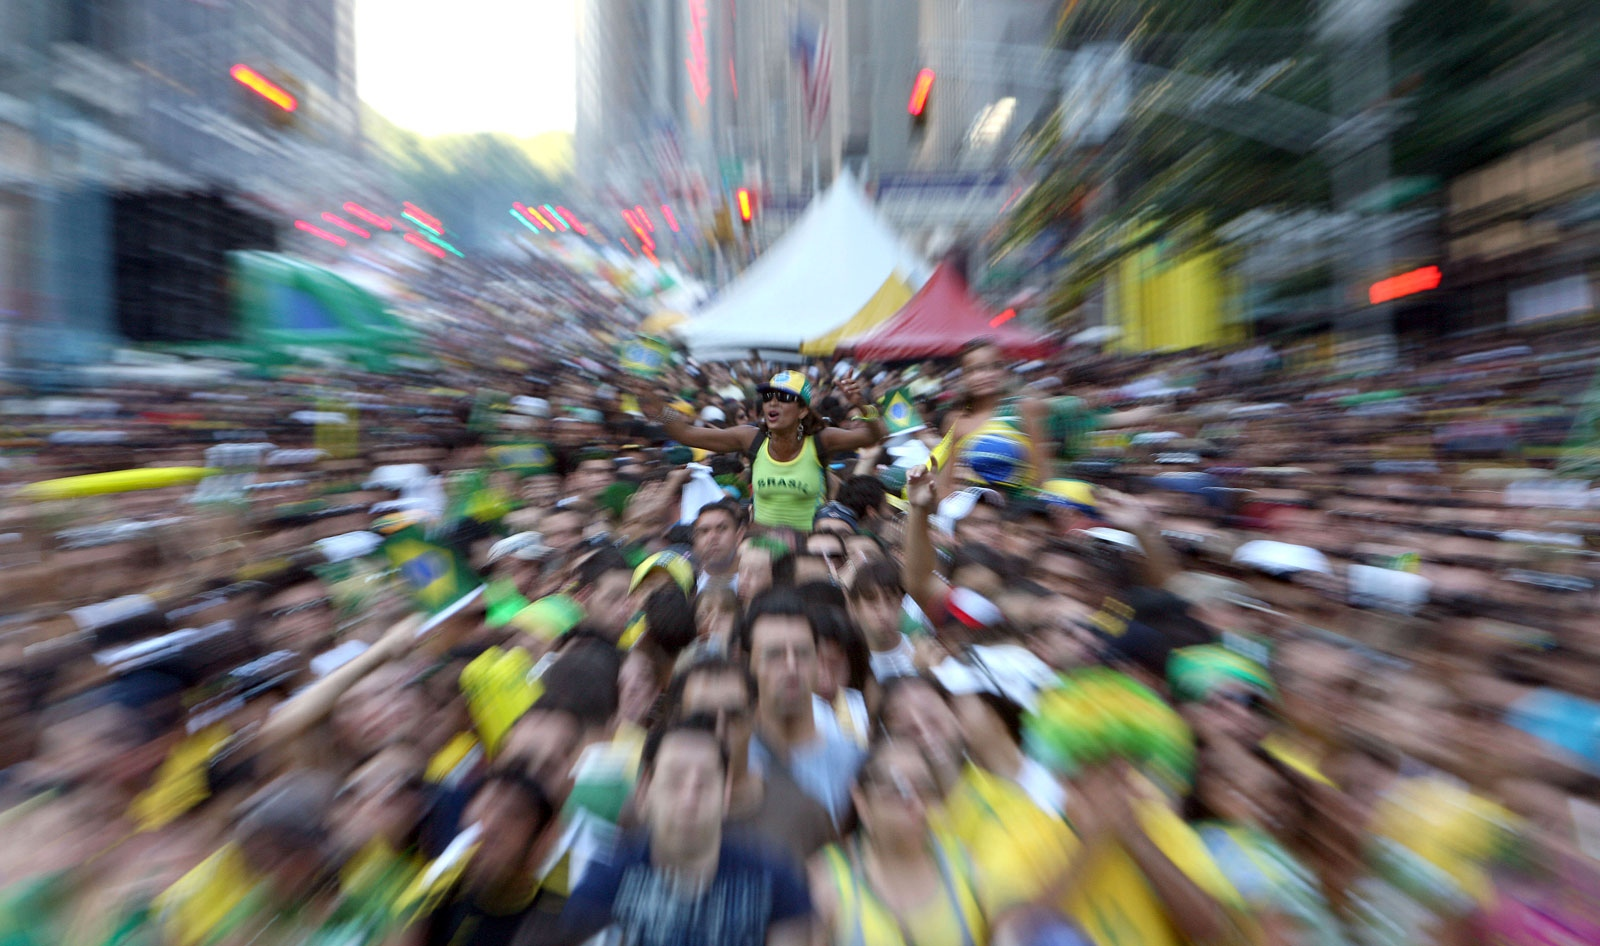 Brazilians celebrate Brazil Day on Sixth Ave in New York.